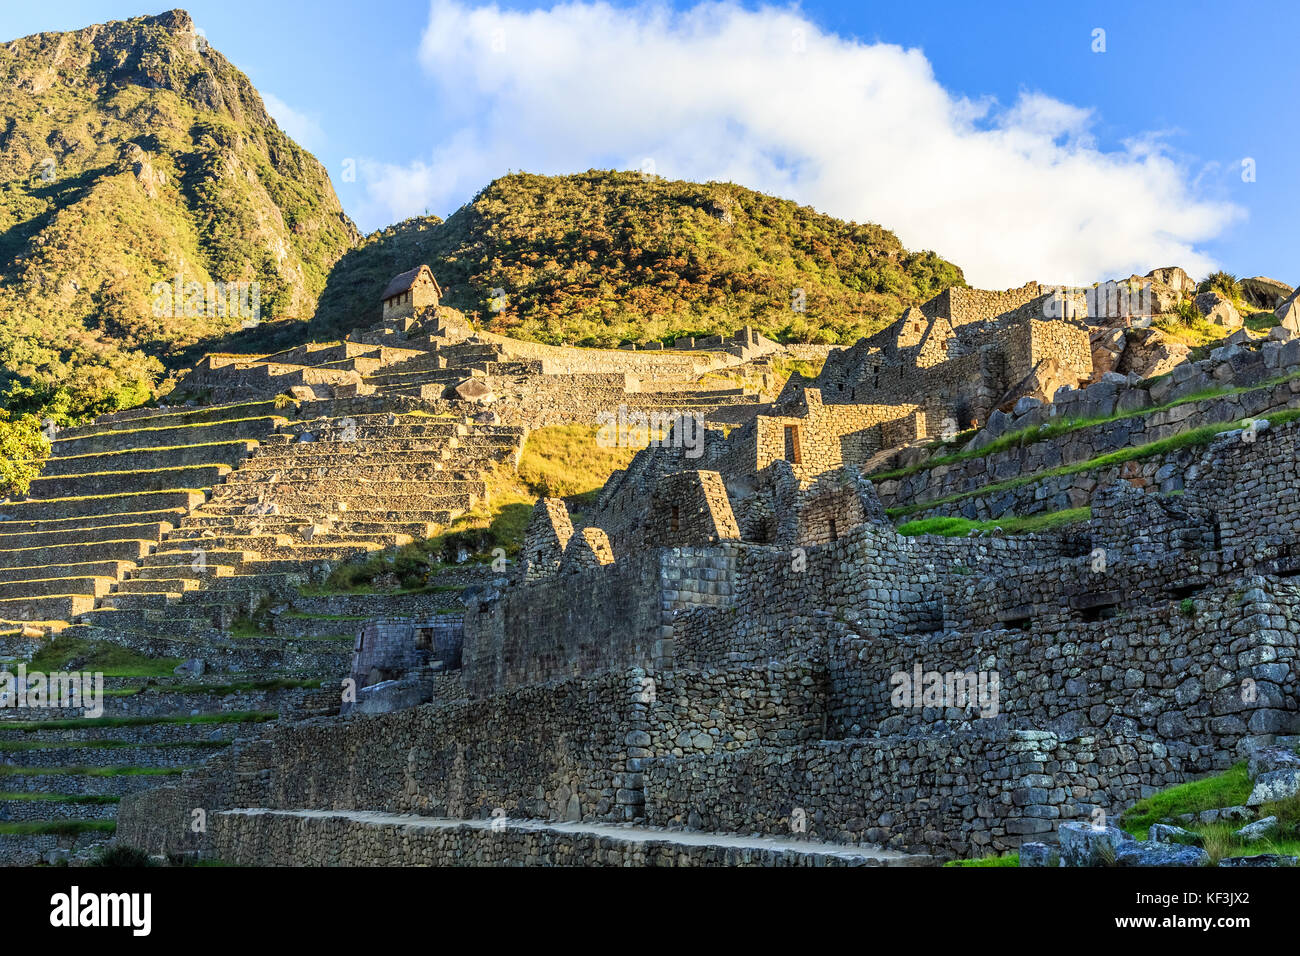 Machu Picchu green terraces and ruins with mountains in the background, Urubamba provnce, Peru Stock Photo